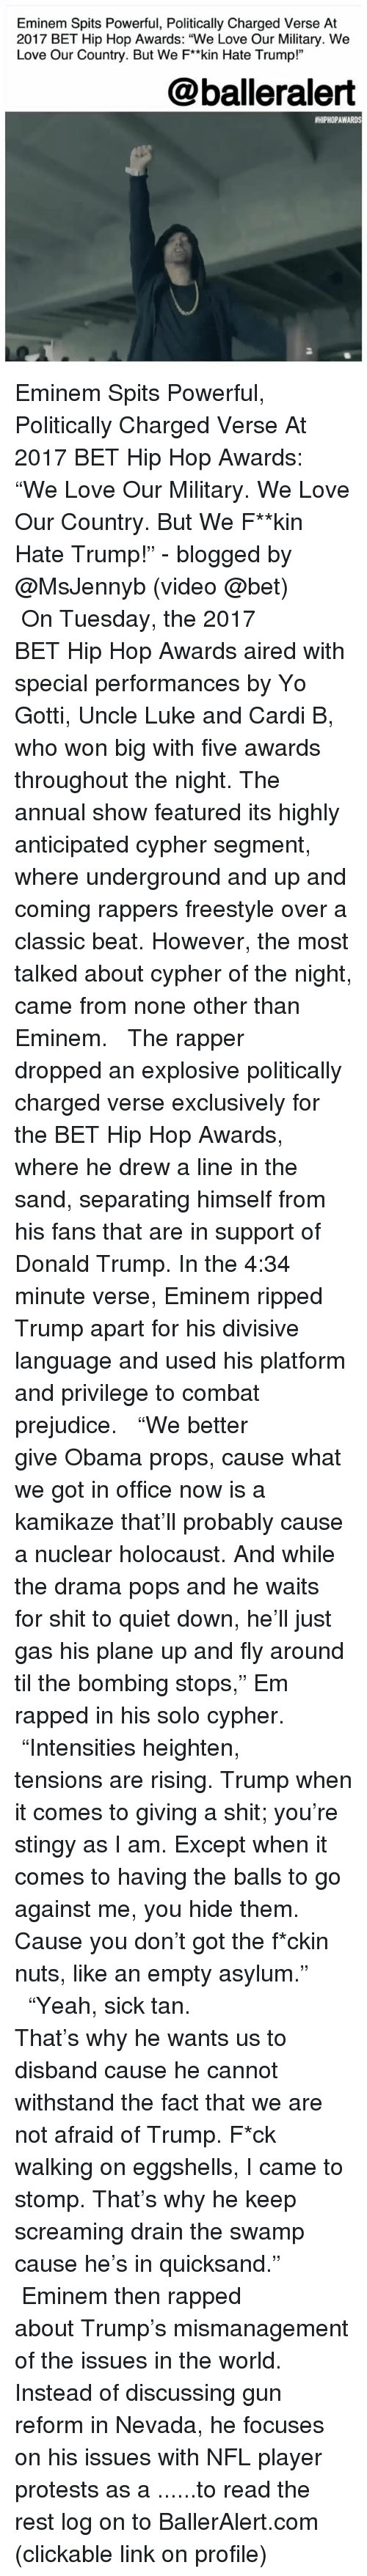 "rapped: Eminem Spits Powerful, Politically Charged Verse At  2017 BET Hip Hop Awards: ""We Love Our Military. We  Love Our Country. But We F*kin Hate Trump!""  @balleralert  #HIPHOPAWARDS  2 Eminem Spits Powerful, Politically Charged Verse At 2017 BET Hip Hop Awards: ""We Love Our Military. We Love Our Country. But We F**kin Hate Trump!"" - blogged by @MsJennyb (video @bet) ⠀⠀⠀⠀⠀⠀⠀ ⠀⠀⠀⠀⠀⠀⠀ On Tuesday, the 2017 BET Hip Hop Awards aired with special performances by Yo Gotti, Uncle Luke and Cardi B, who won big with five awards throughout the night. The annual show featured its highly anticipated cypher segment, where underground and up and coming rappers freestyle over a classic beat. However, the most talked about cypher of the night, came from none other than Eminem. ⠀⠀⠀⠀⠀⠀⠀ ⠀⠀⠀⠀⠀⠀⠀ The rapper dropped an explosive politically charged verse exclusively for the BET Hip Hop Awards, where he drew a line in the sand, separating himself from his fans that are in support of Donald Trump. In the 4:34 minute verse, Eminem ripped Trump apart for his divisive language and used his platform and privilege to combat prejudice. ⠀⠀⠀⠀⠀⠀⠀ ⠀⠀⠀⠀⠀⠀⠀ ""We better give Obama props, cause what we got in office now is a kamikaze that'll probably cause a nuclear holocaust. And while the drama pops and he waits for shit to quiet down, he'll just gas his plane up and fly around til the bombing stops,"" Em rapped in his solo cypher. ⠀⠀⠀⠀⠀⠀⠀ ⠀⠀⠀⠀⠀⠀⠀ ""Intensities heighten, tensions are rising. Trump when it comes to giving a shit; you're stingy as I am. Except when it comes to having the balls to go against me, you hide them. Cause you don't got the f*ckin nuts, like an empty asylum."" ⠀⠀⠀⠀⠀⠀⠀ ⠀⠀⠀⠀⠀⠀⠀ ""Yeah, sick tan. That's why he wants us to disband cause he cannot withstand the fact that we are not afraid of Trump. F*ck walking on eggshells, I came to stomp. That's why he keep screaming drain the swamp cause he's in quicksand."" ⠀⠀⠀⠀⠀⠀⠀ ⠀⠀⠀⠀⠀⠀⠀ Eminem then rapped about Trump's mismanagement of the issues in the world. Instead of discussing gun reform in Nevada, he focuses on his issues with NFL player protests as a ......to read the rest log on to BallerAlert.com (clickable link on profile)"